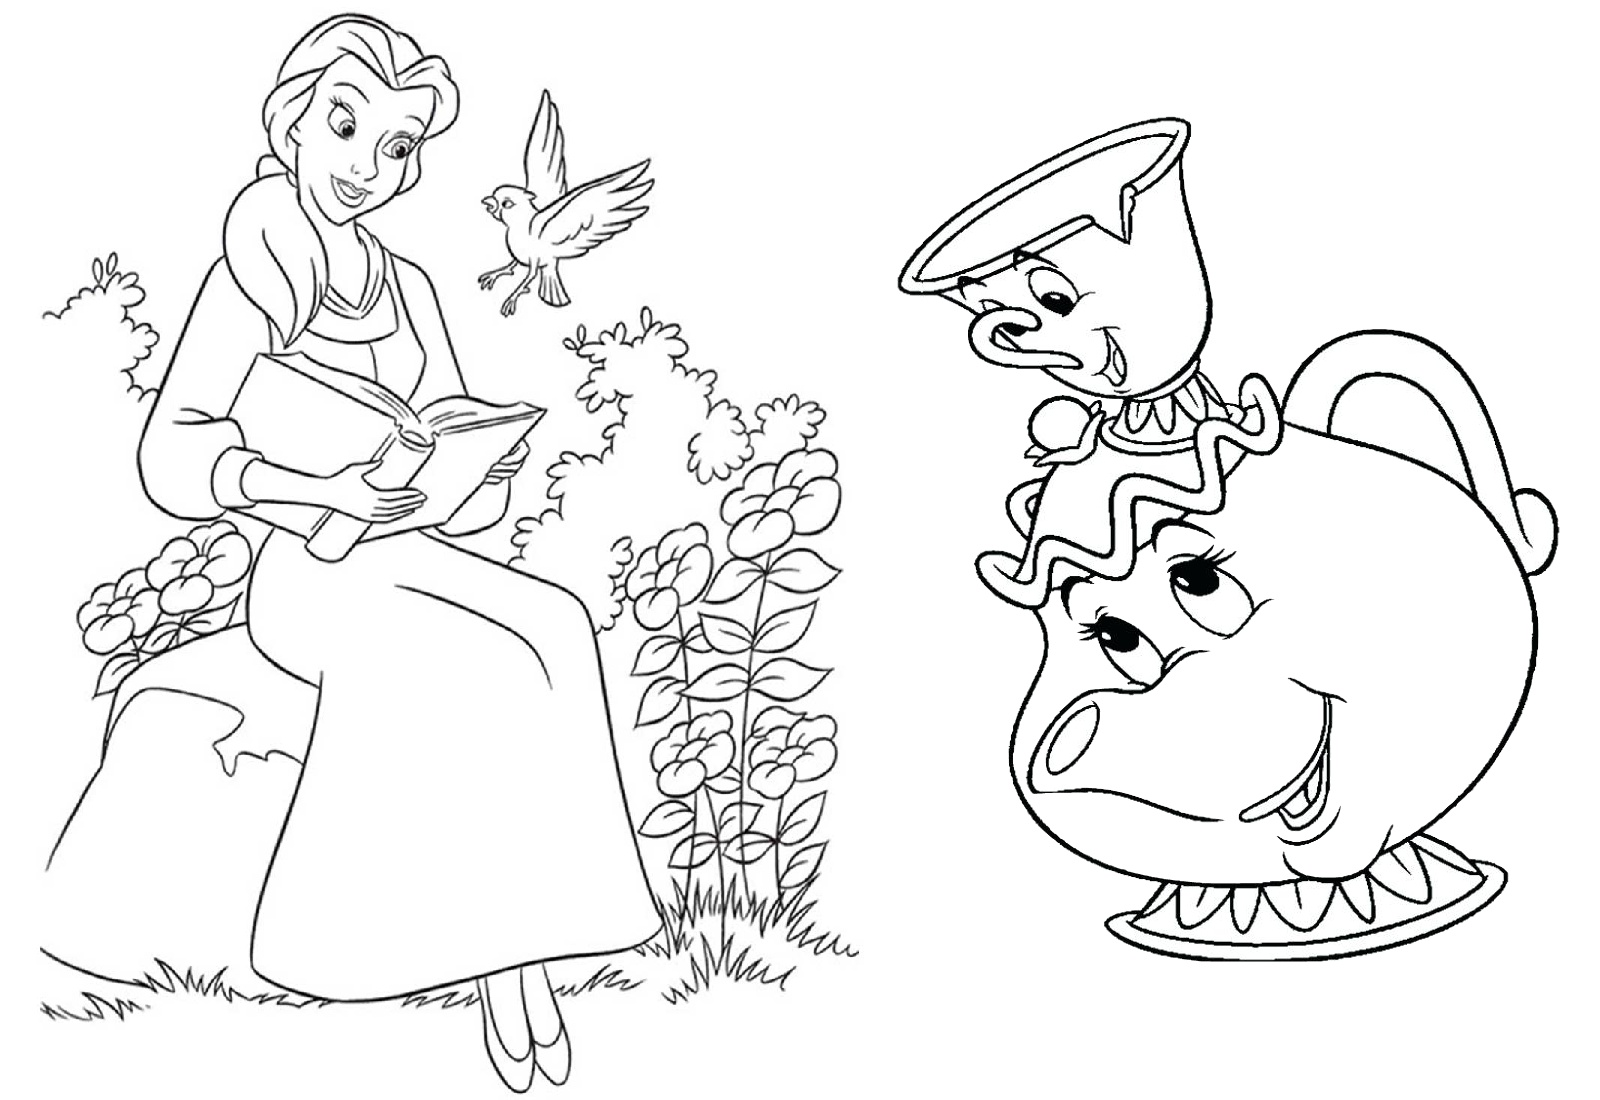 Free Printable Sleeping Beauty Coloring Pages For Kids | 1100x1600